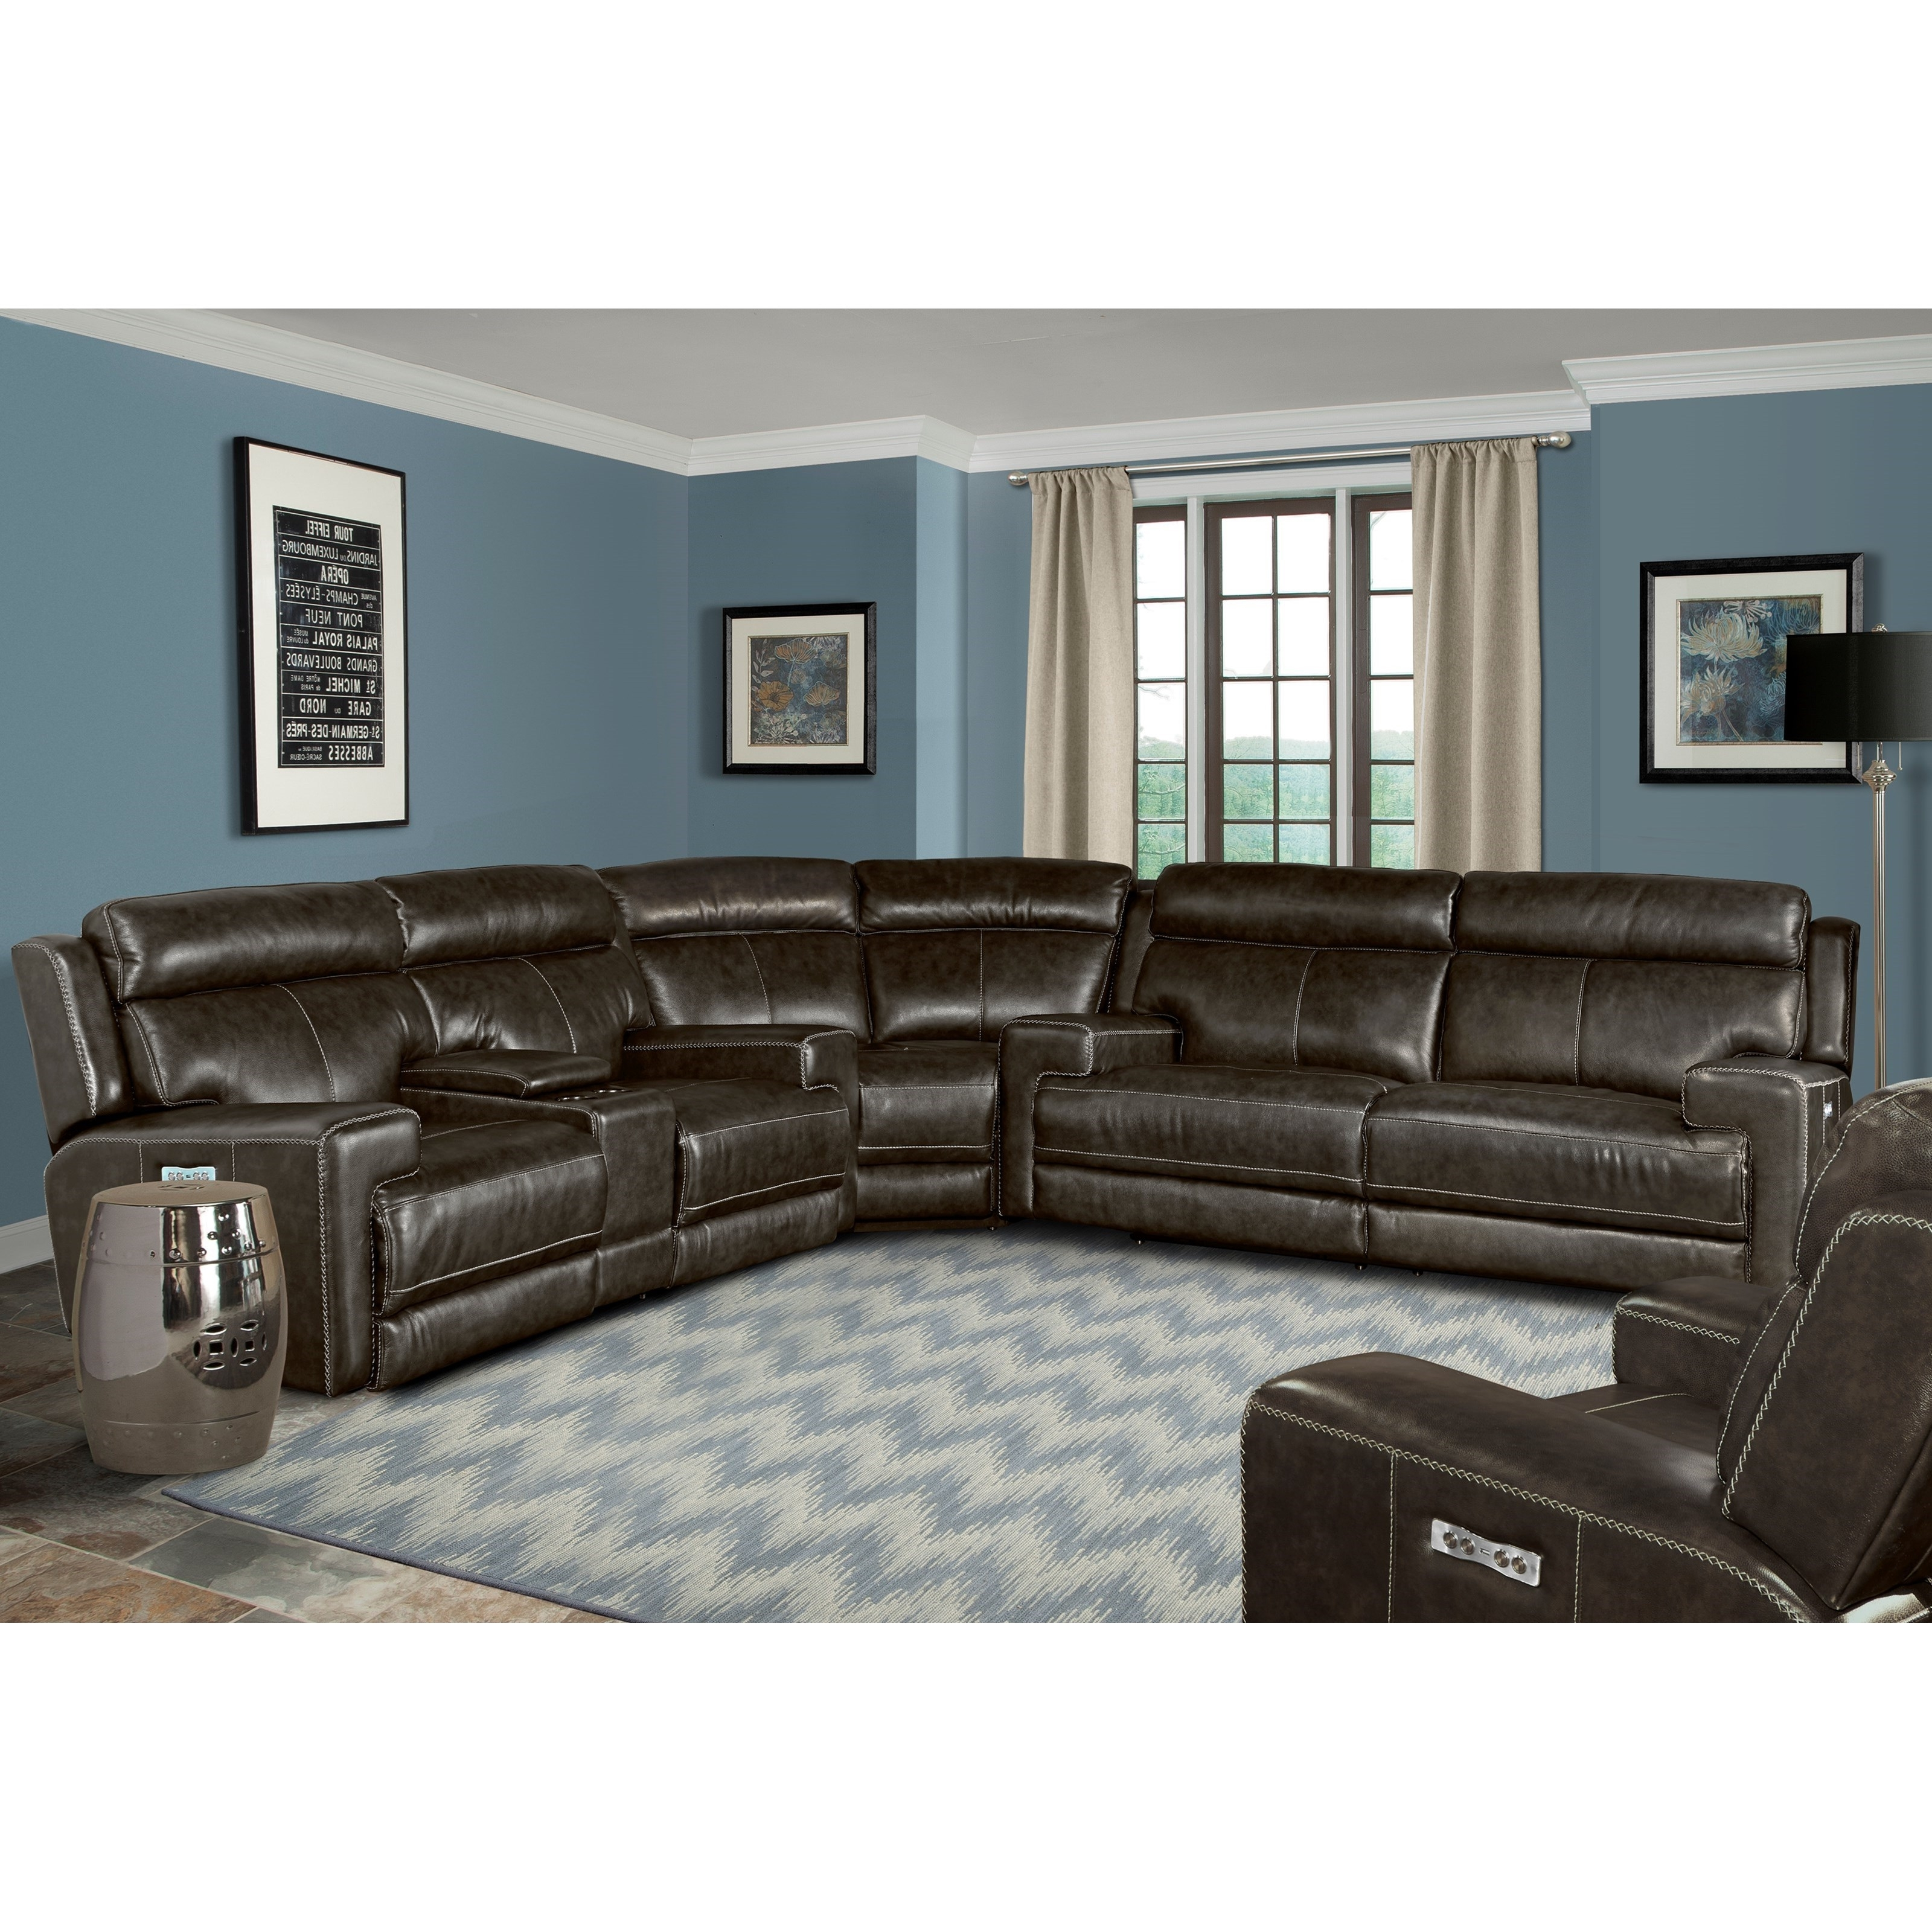 Farmersagentartruiz Intended For Well Known Sectional Sofas At Barrie (View 14 of 15)